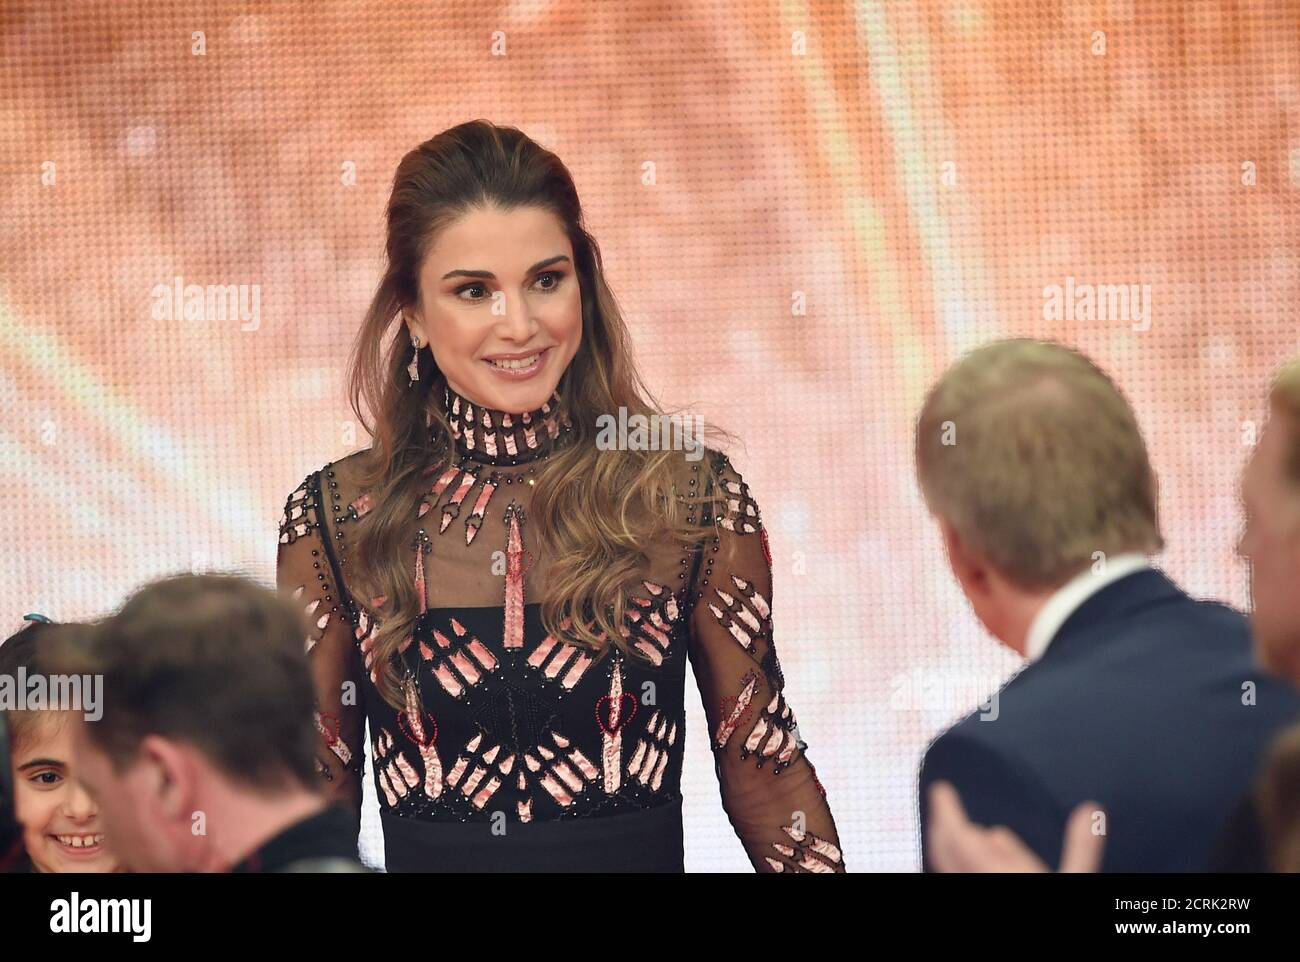 Queen Rania Charity High Resolution Stock Photography And Images Alamy